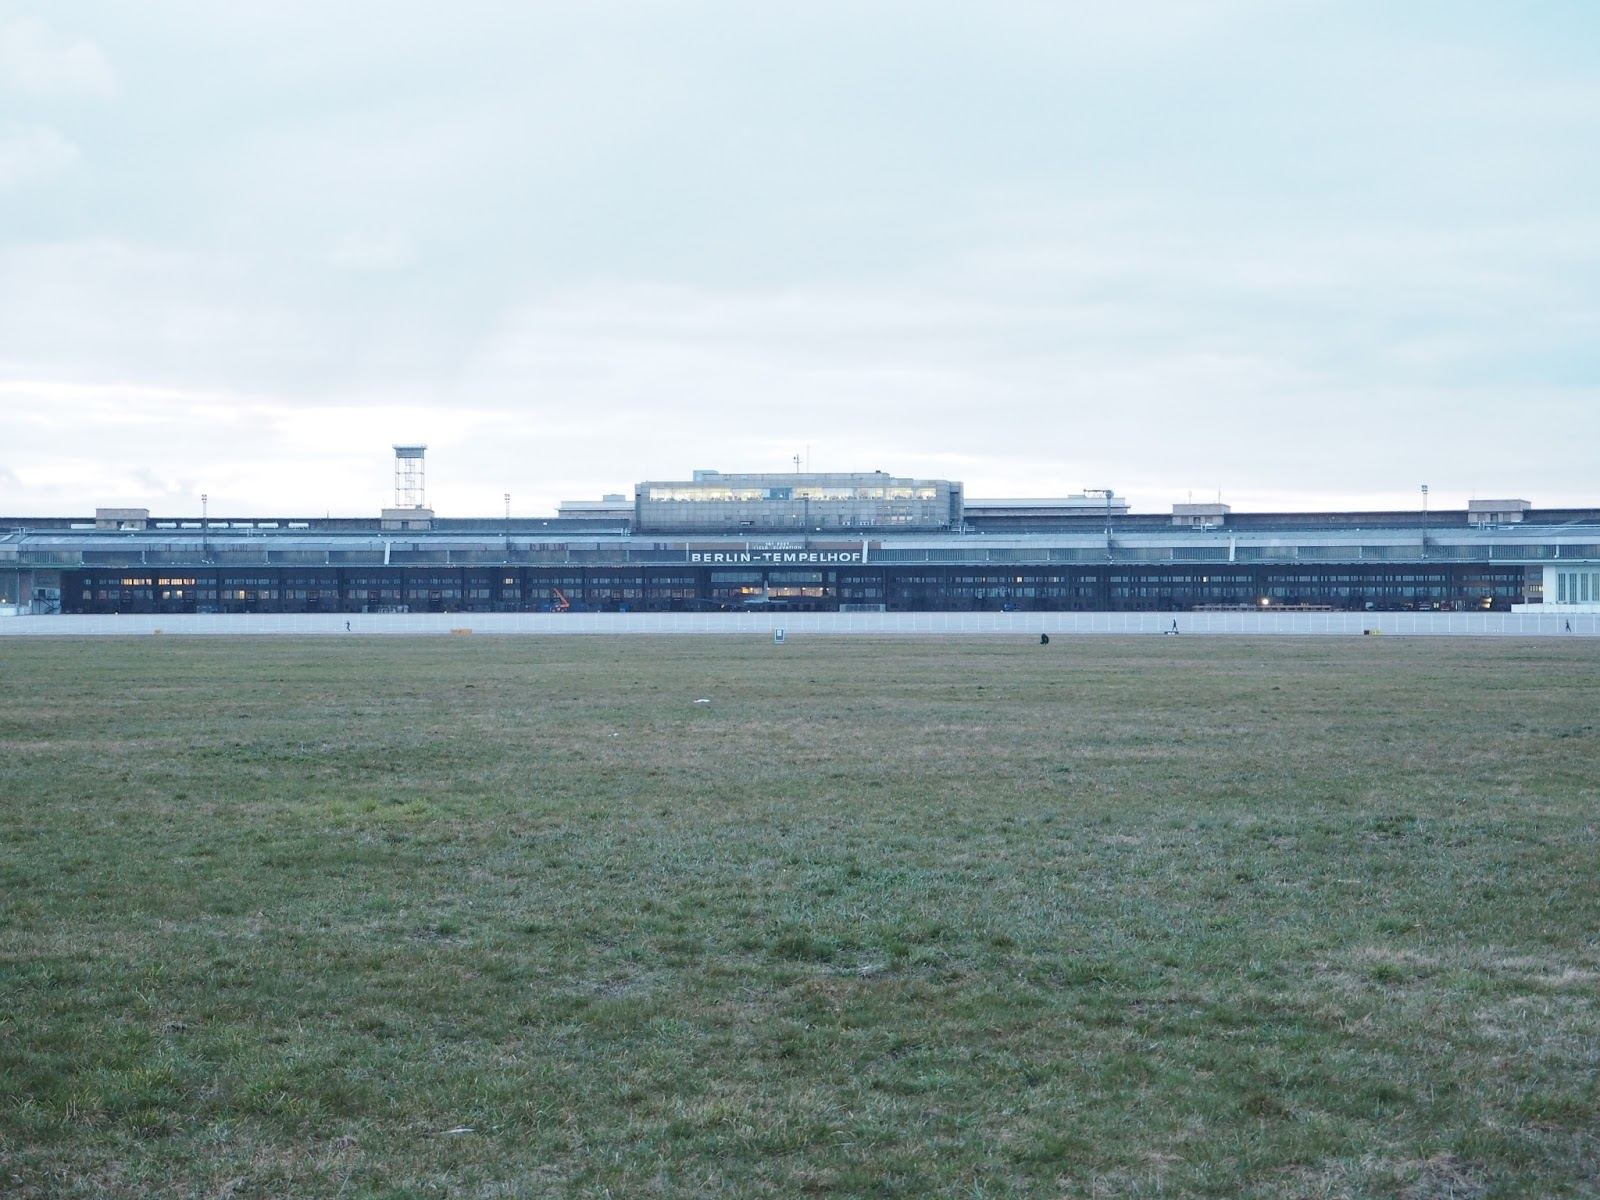 Berlin travel photo diary Tempelhofer Feld